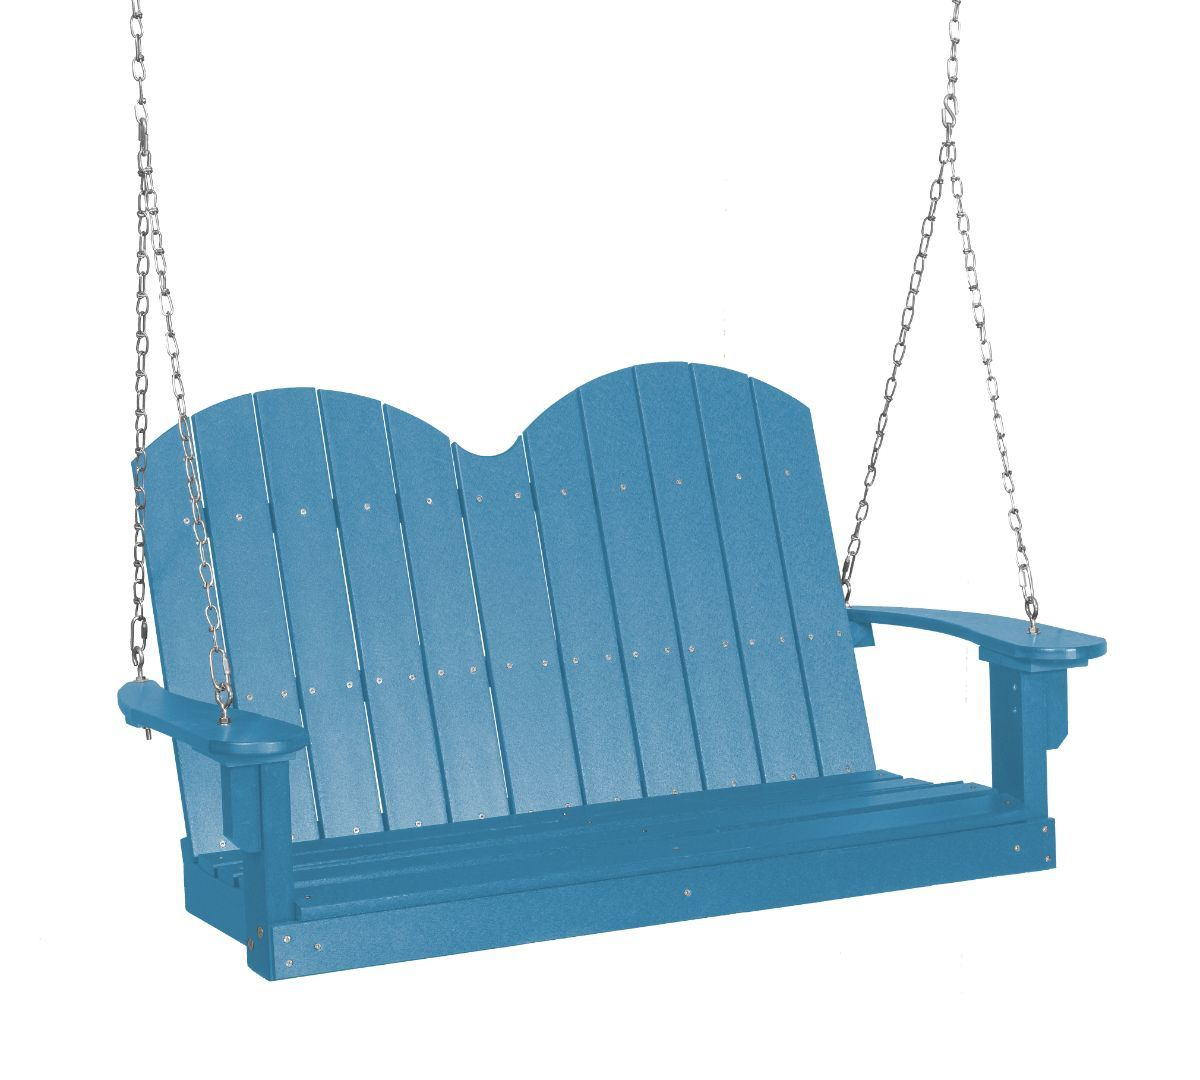 Powder Blue Green Bay Outdoor Swing